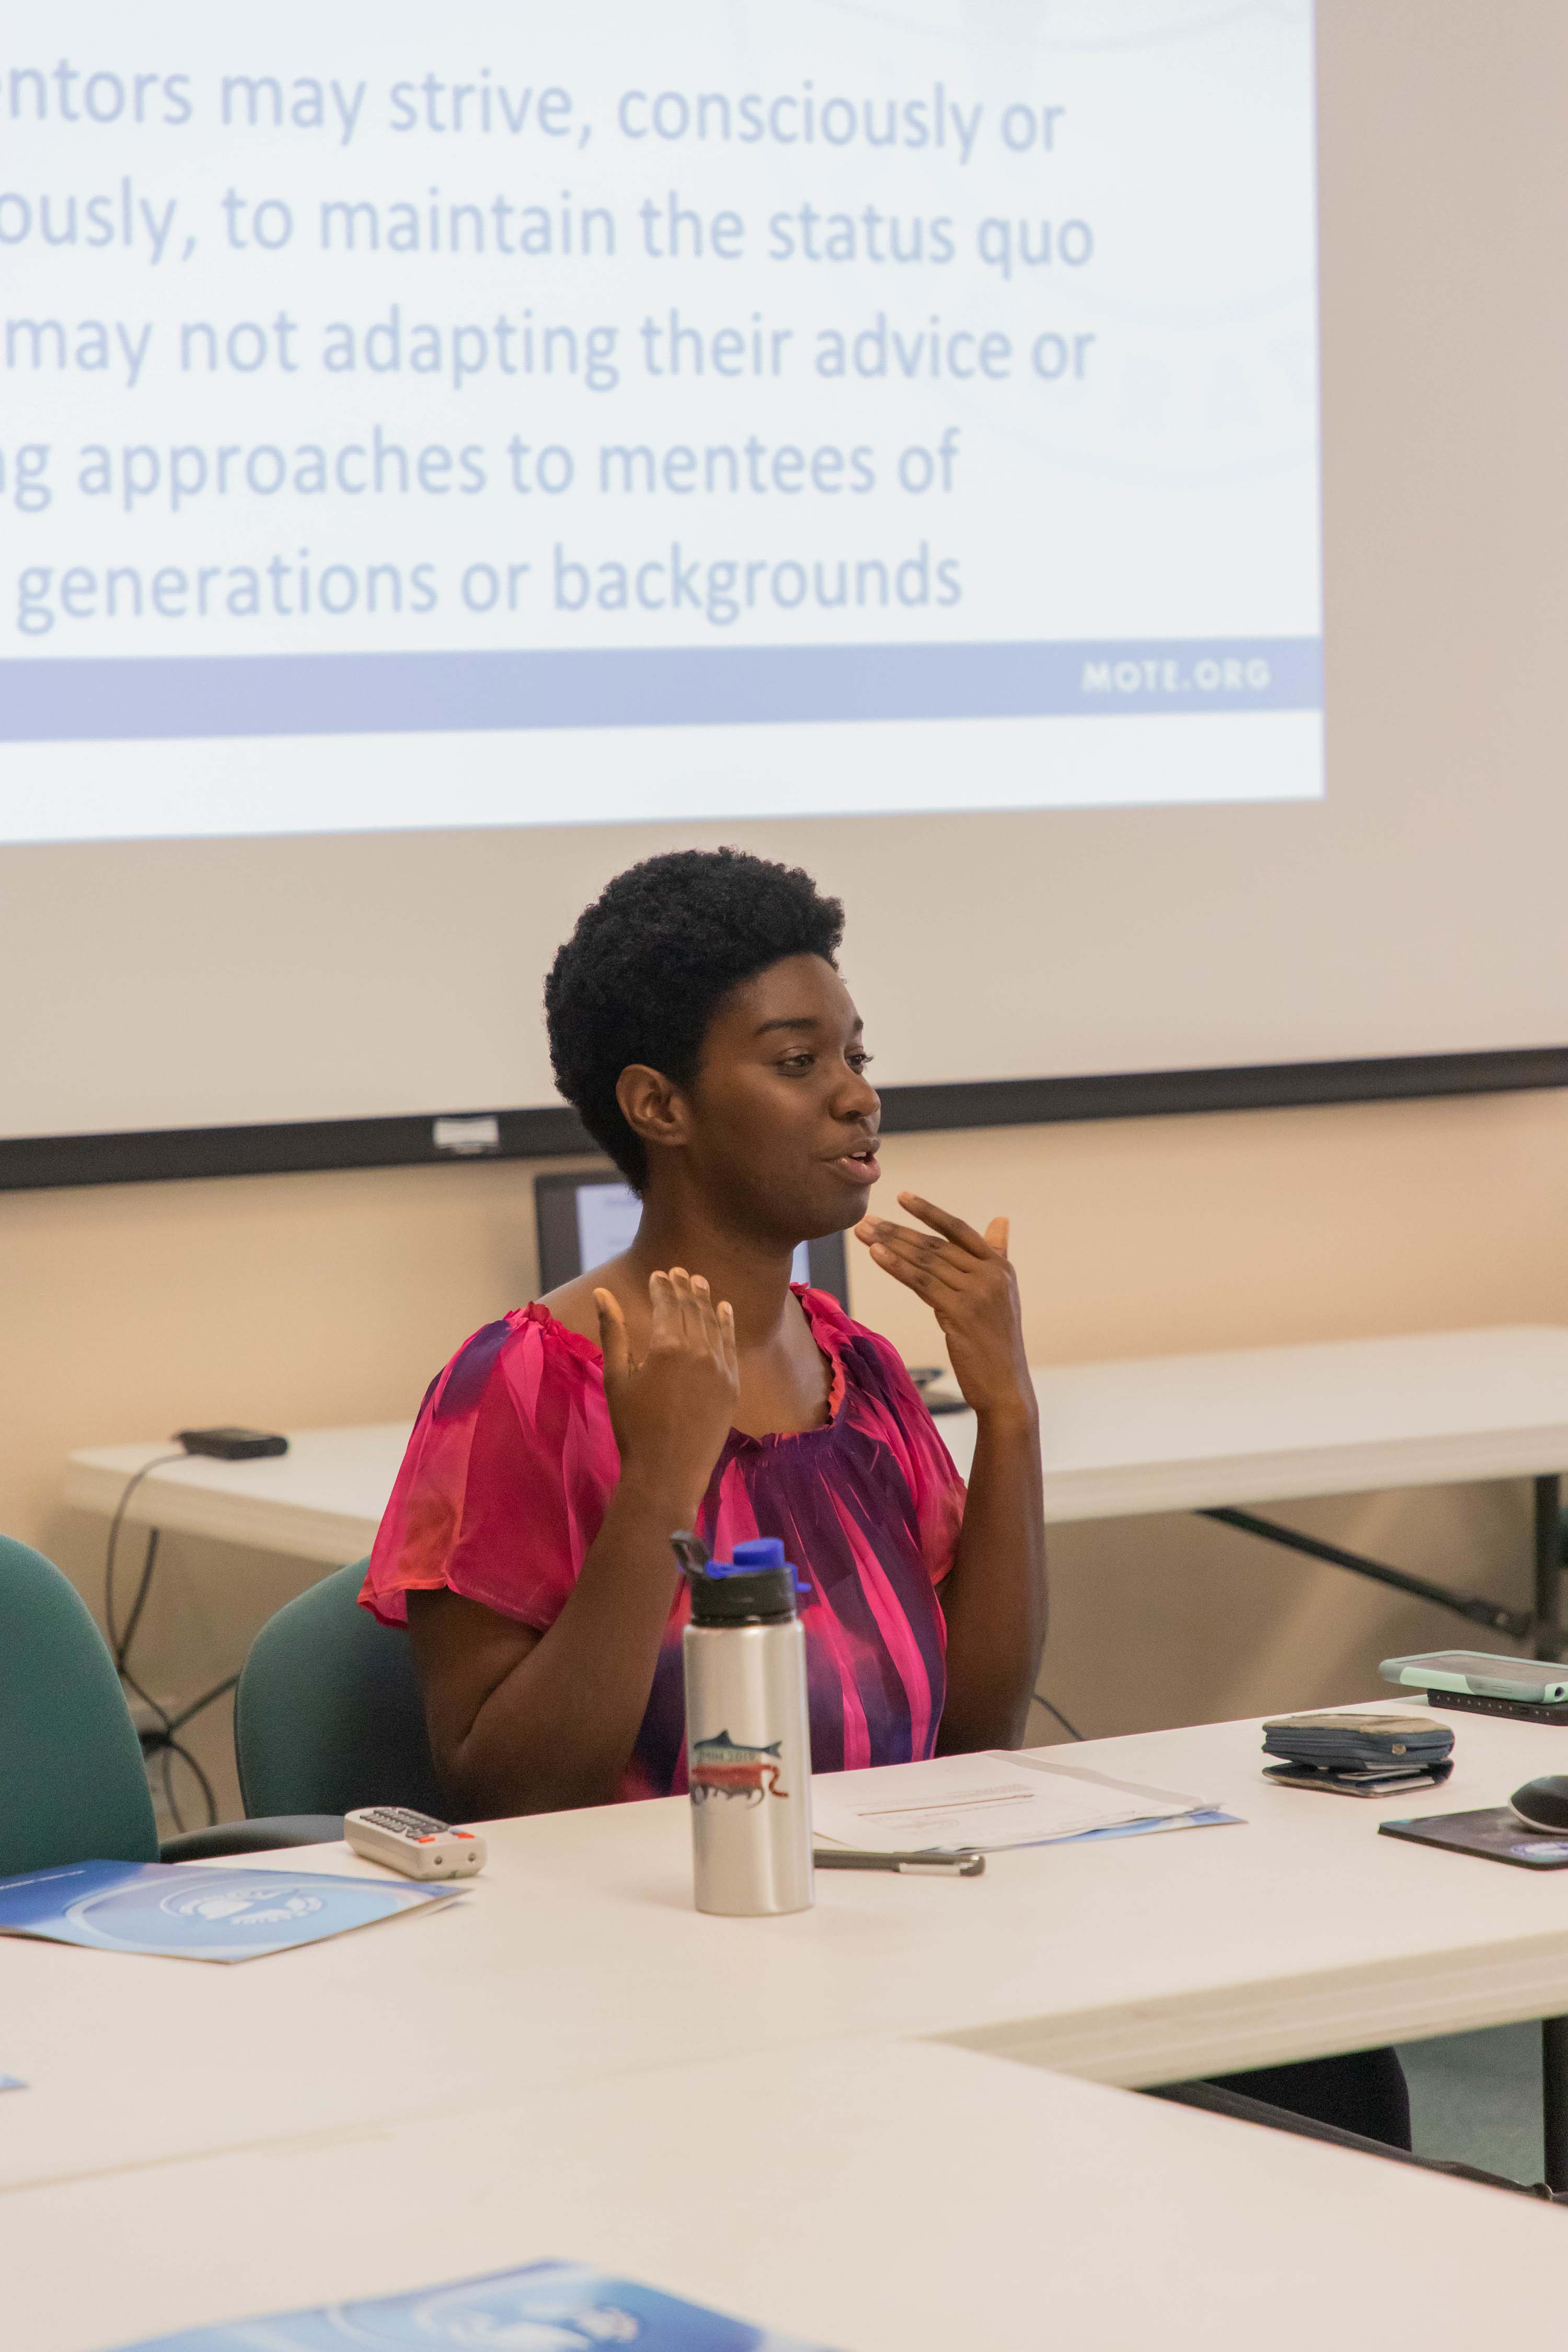 MarSci-LACE Grant Project Coordinator Jasmin Graham presents a seminar to Mote staff on the topic of mentoring. Photo Credit - © Mote Marine Laboratory